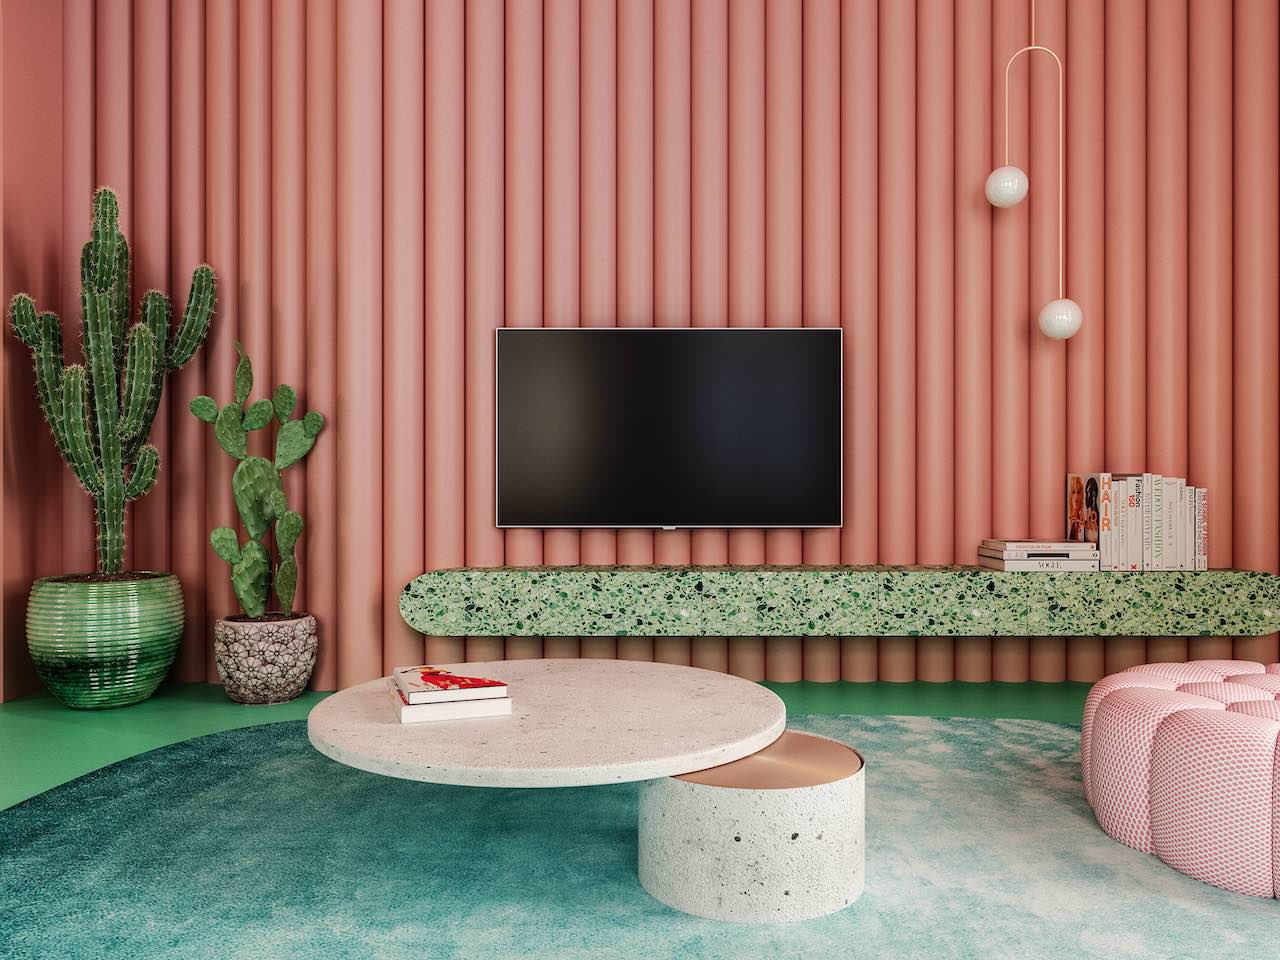 The furniture and the walls are in nuances of sugar pink, as well as the polyurethane tubes that have been painted especially